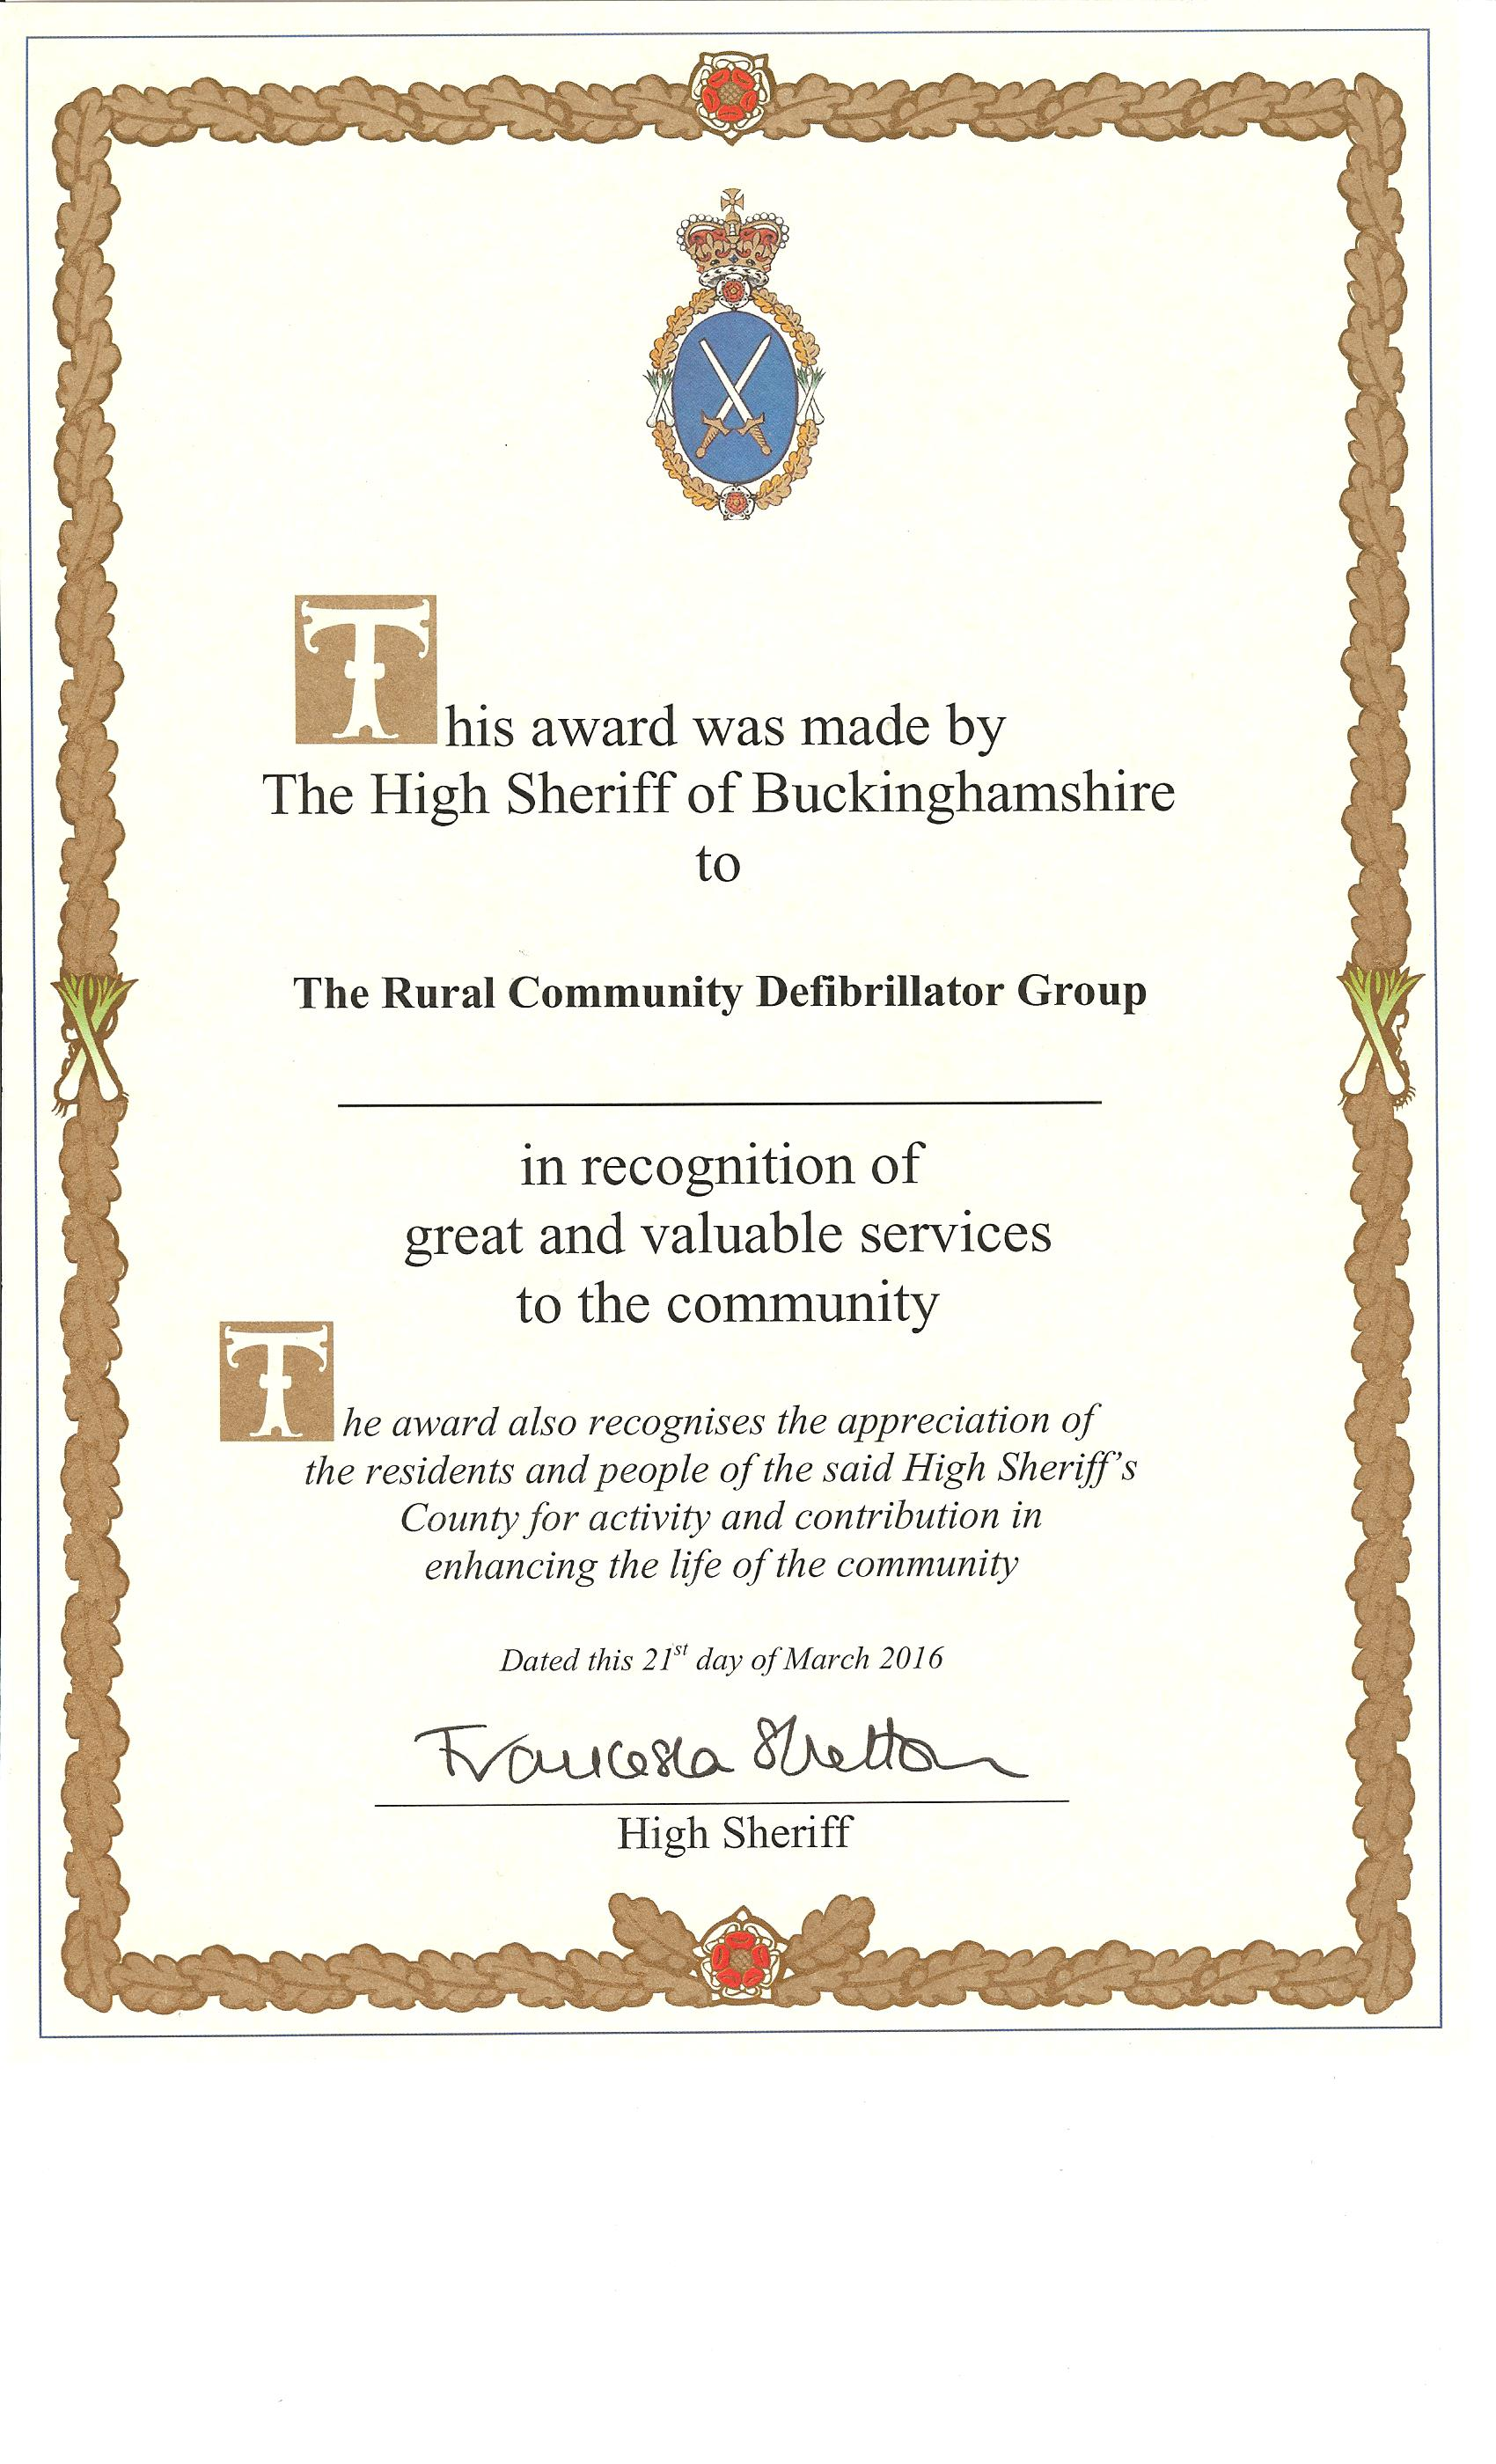 RCDG High Sheriff certificate